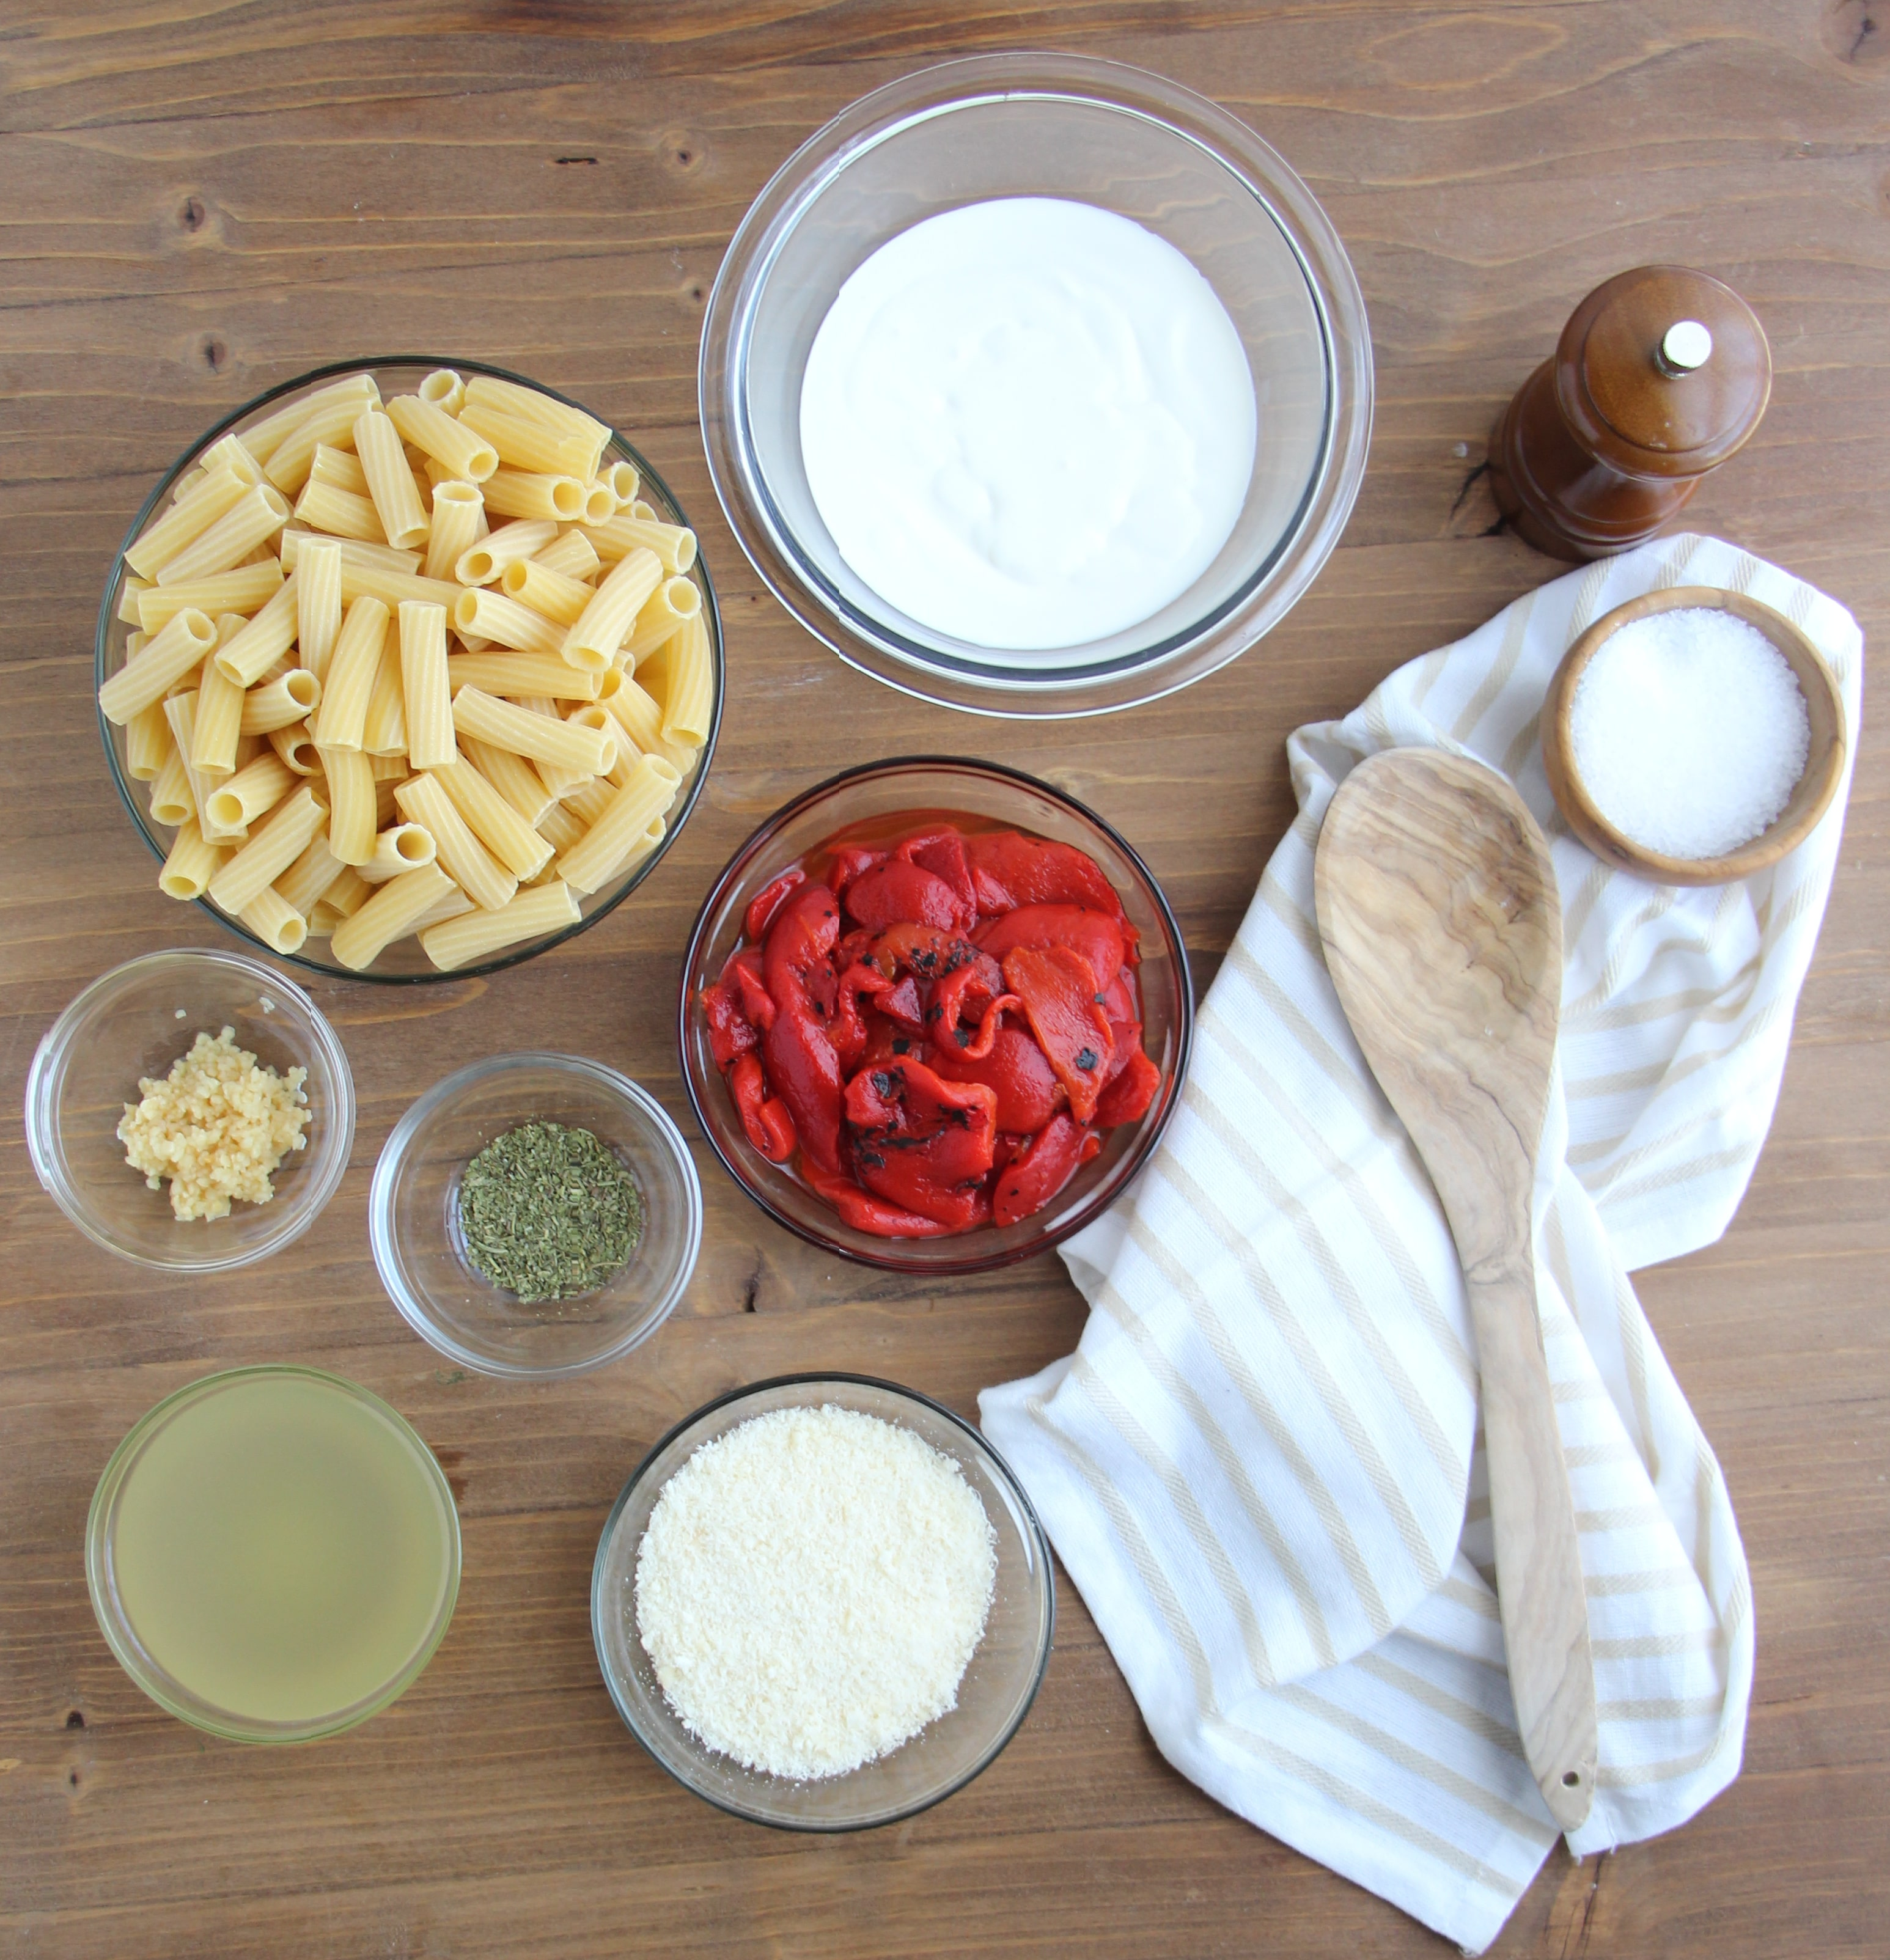 Ingredients needed to make Roasted Red Pepper Sauce measured into clear glass bowls on a wood background.